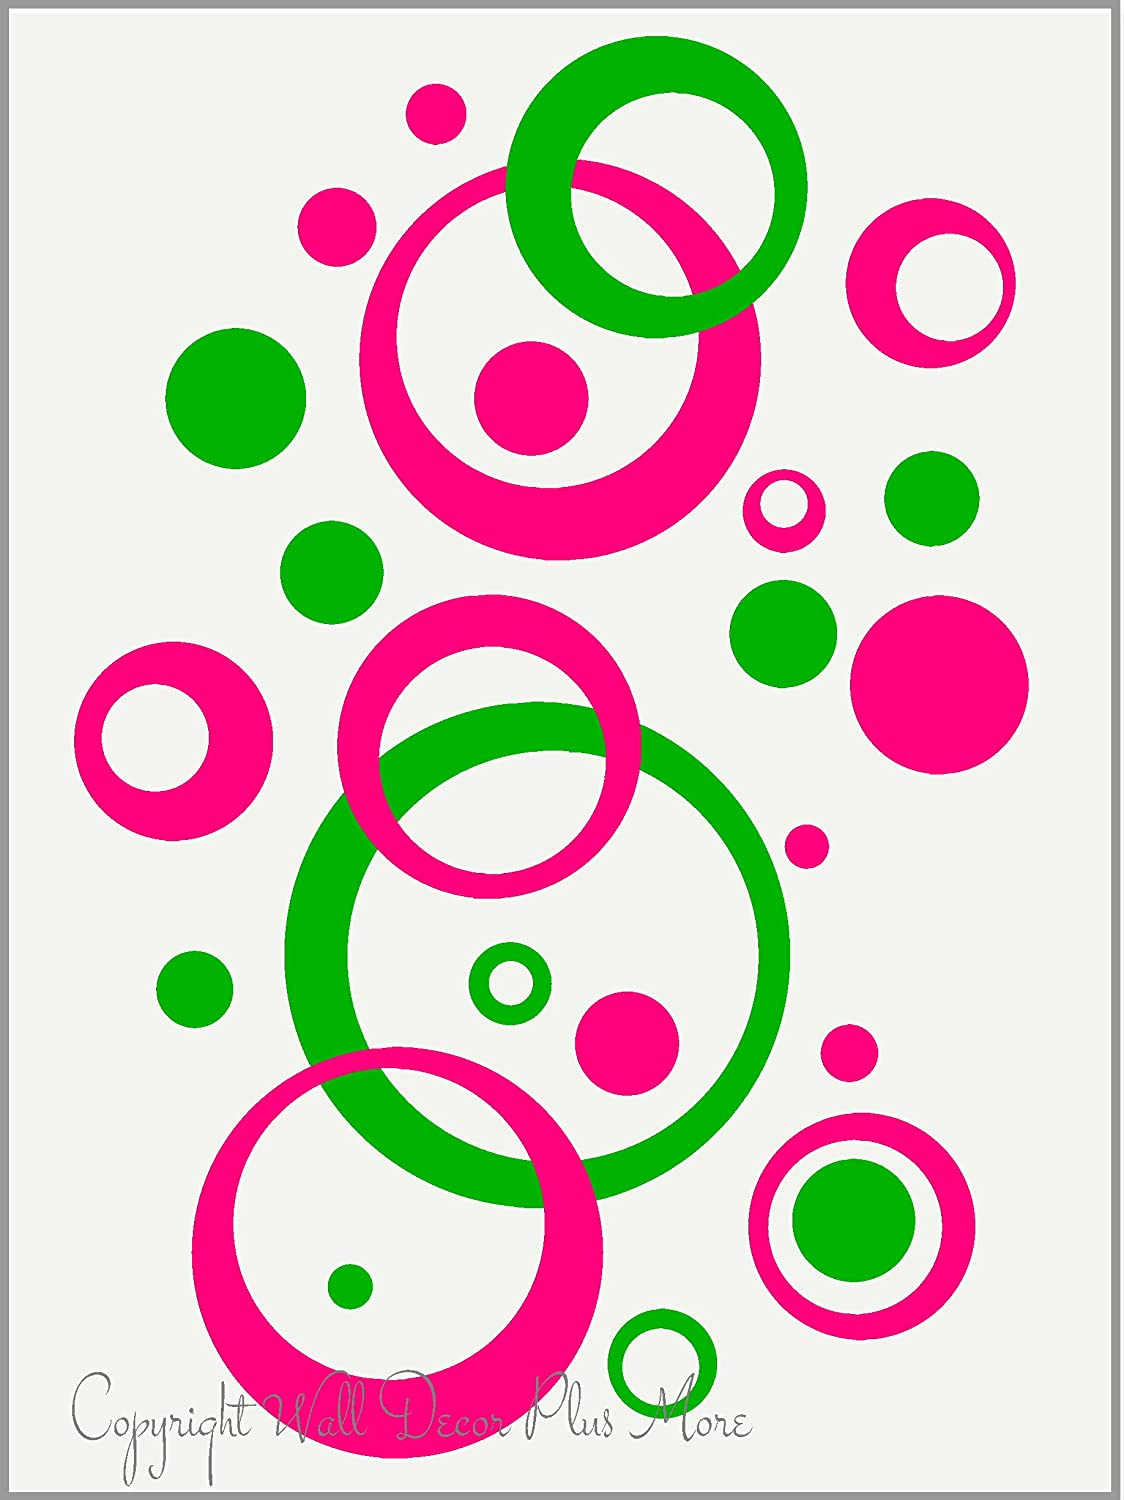 Amazon.com: Hot Pink & Lime Green Wall Circle Bubble Stickers Rings ...